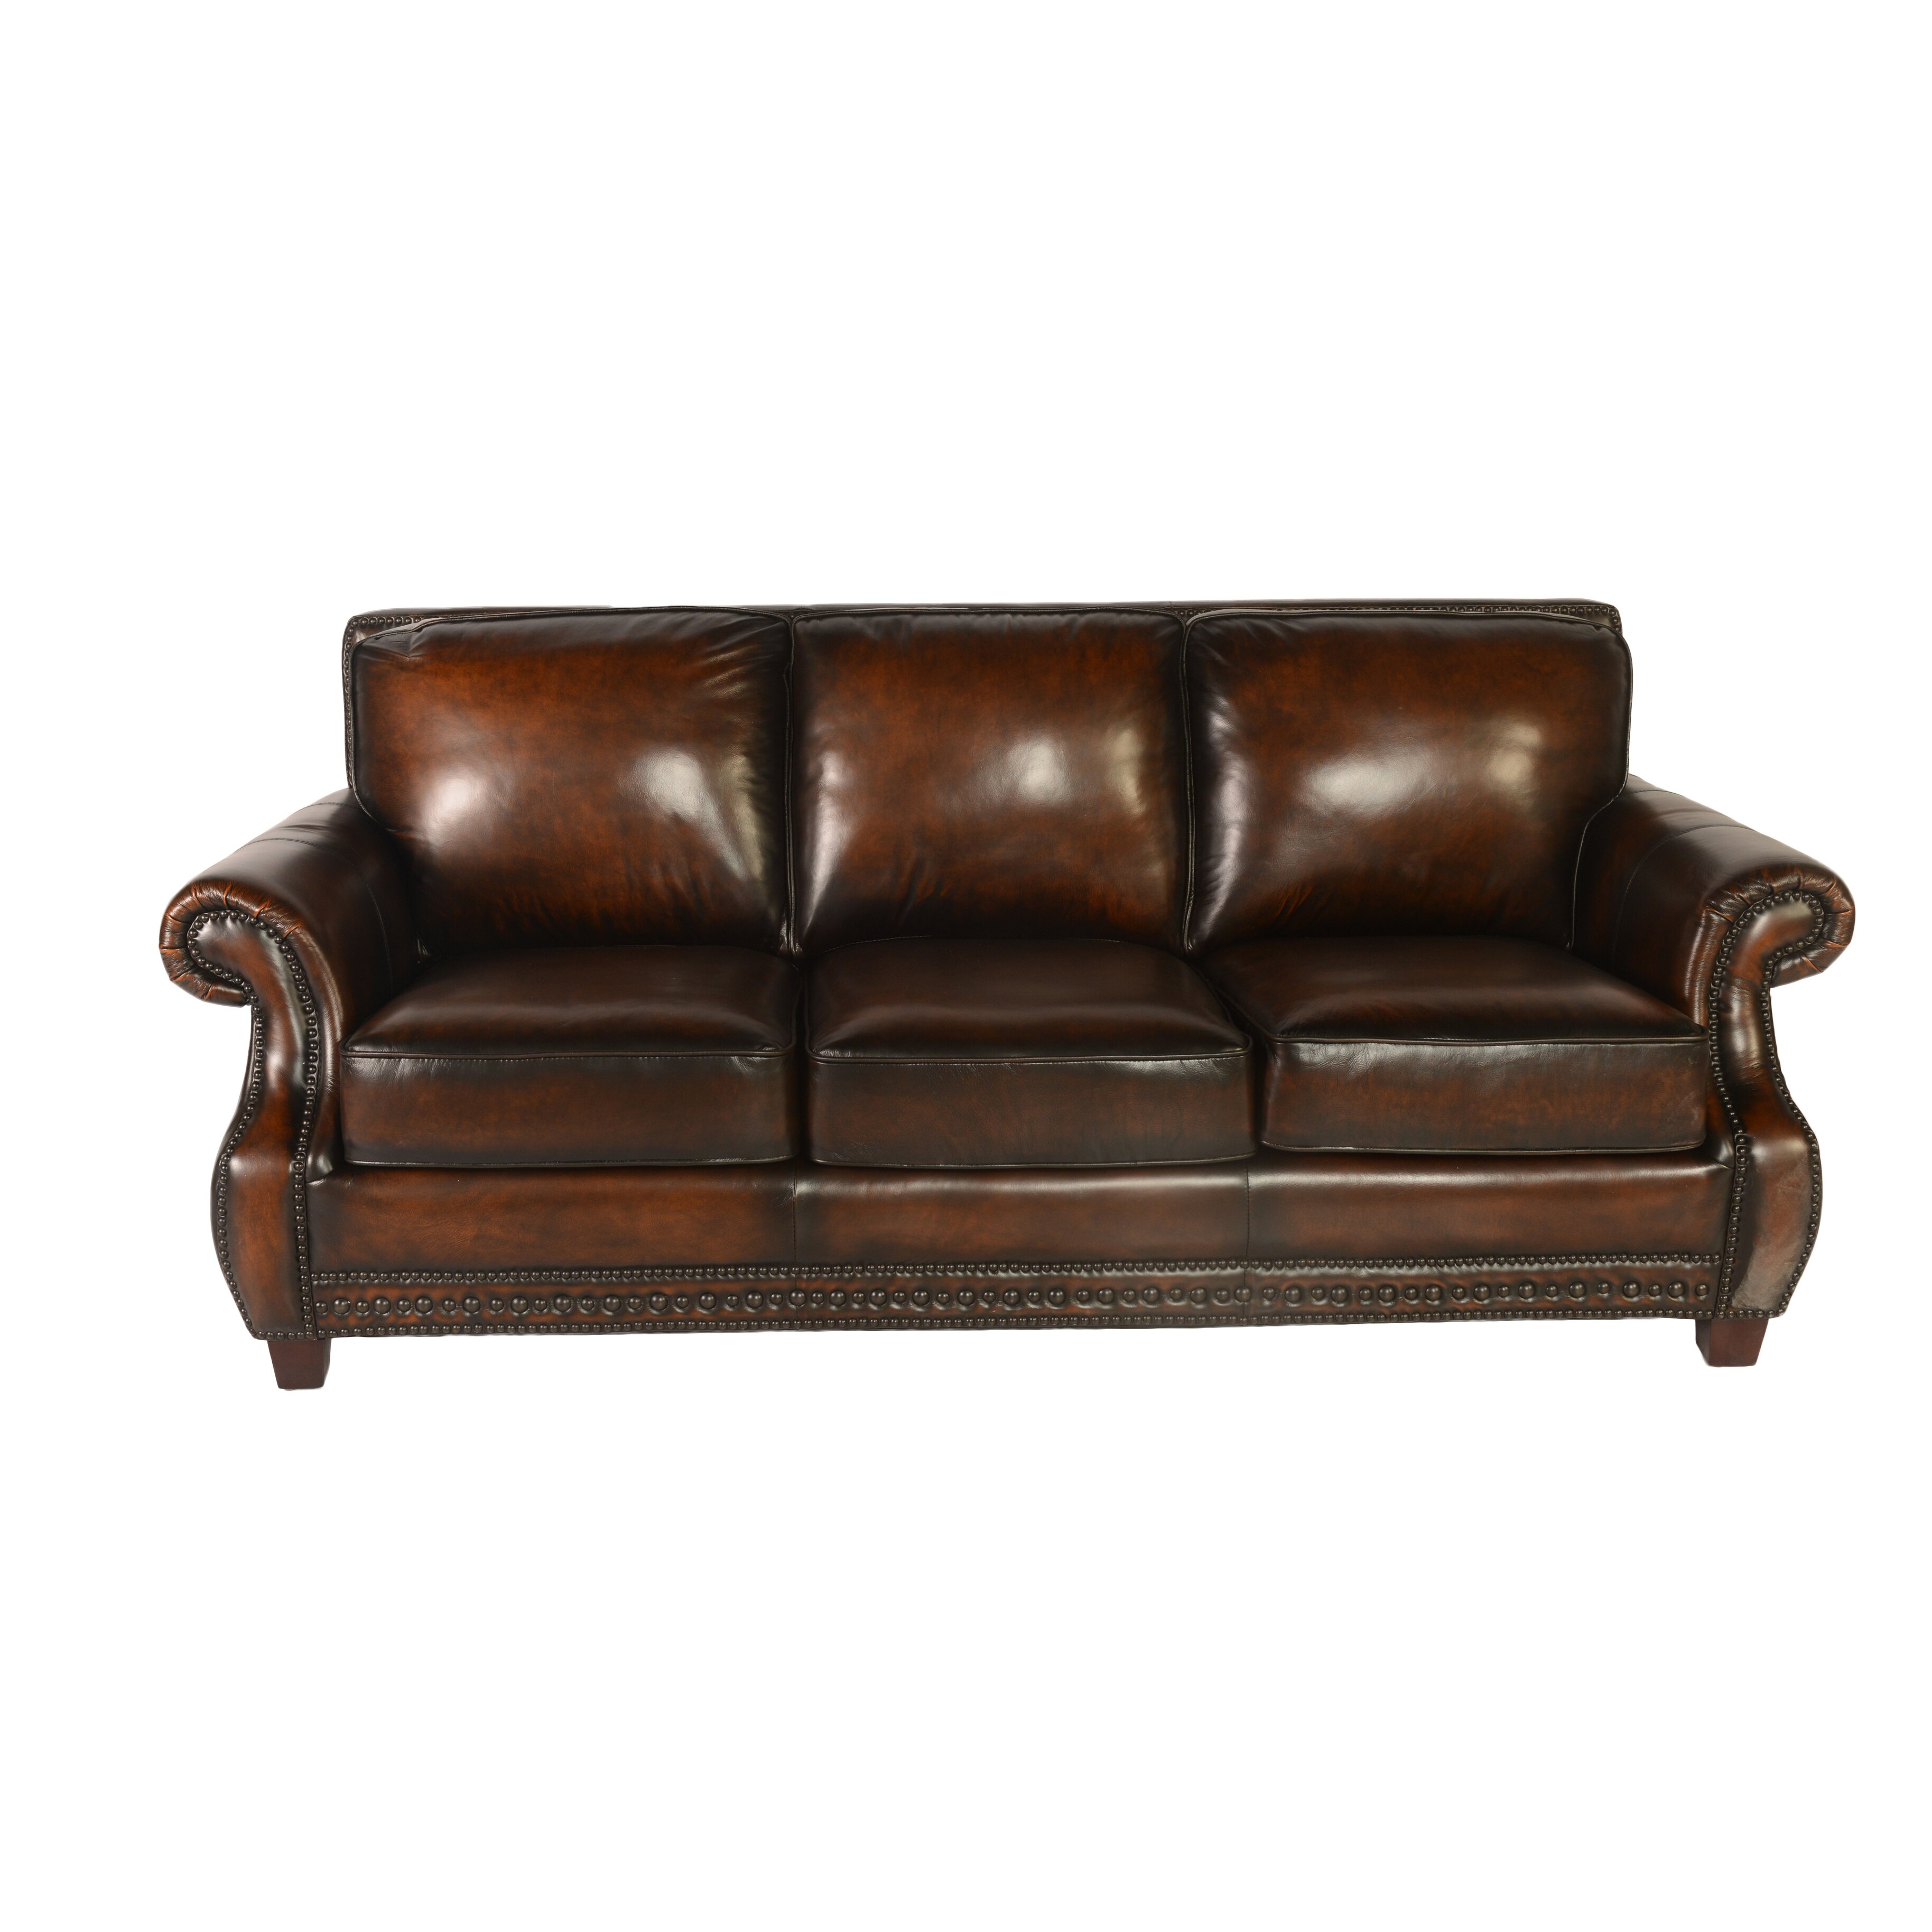 Leather Living Room Lazzaro Leather Living Room Collection Reviews Wayfair